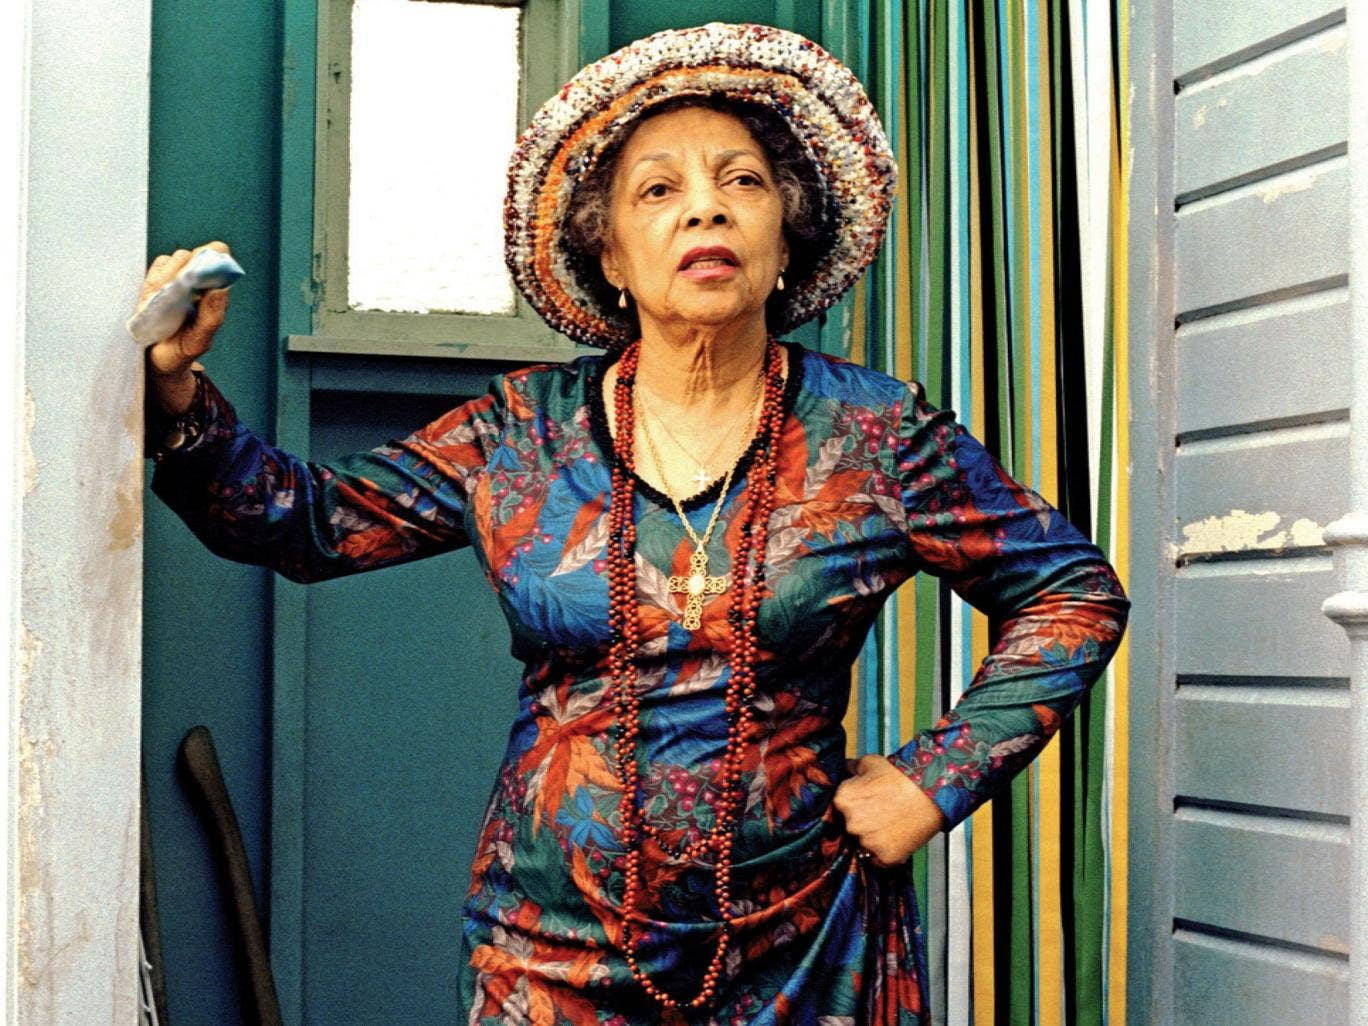 Actress and activist Ruby Dee died on 11 June 2014 aged 91